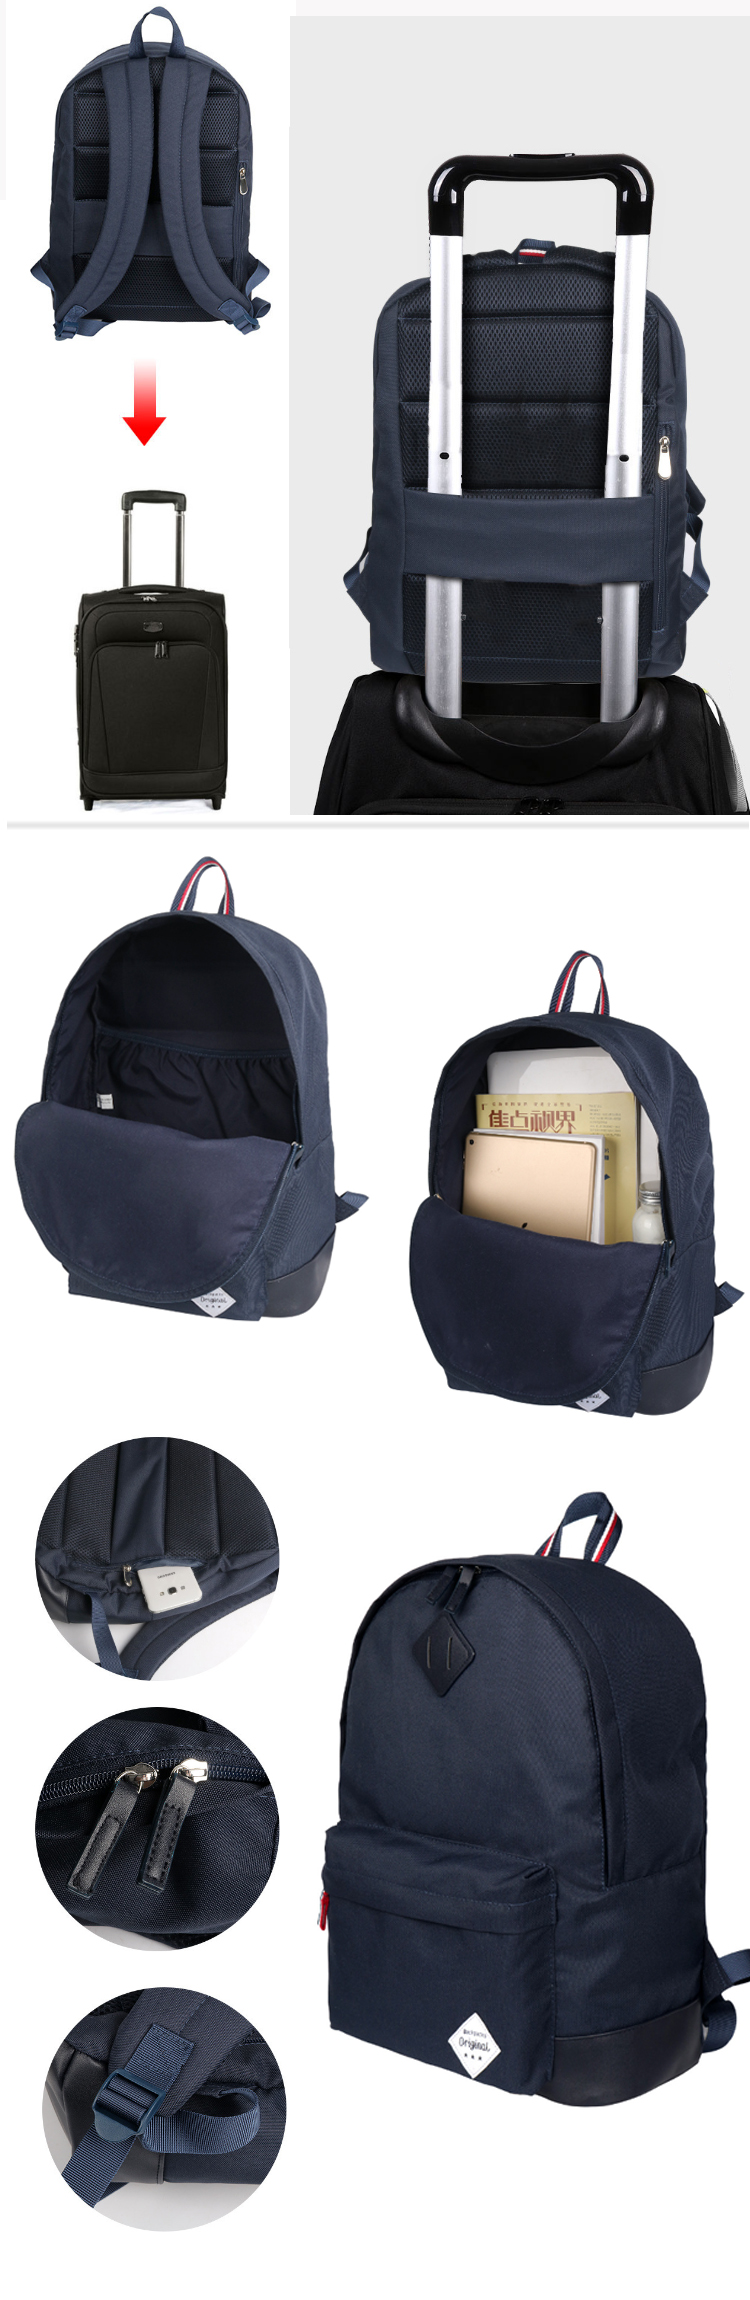 Osgoodway Mens Vintage Travel Rucksack Wholesale Custom Bags College School Backpack Bag